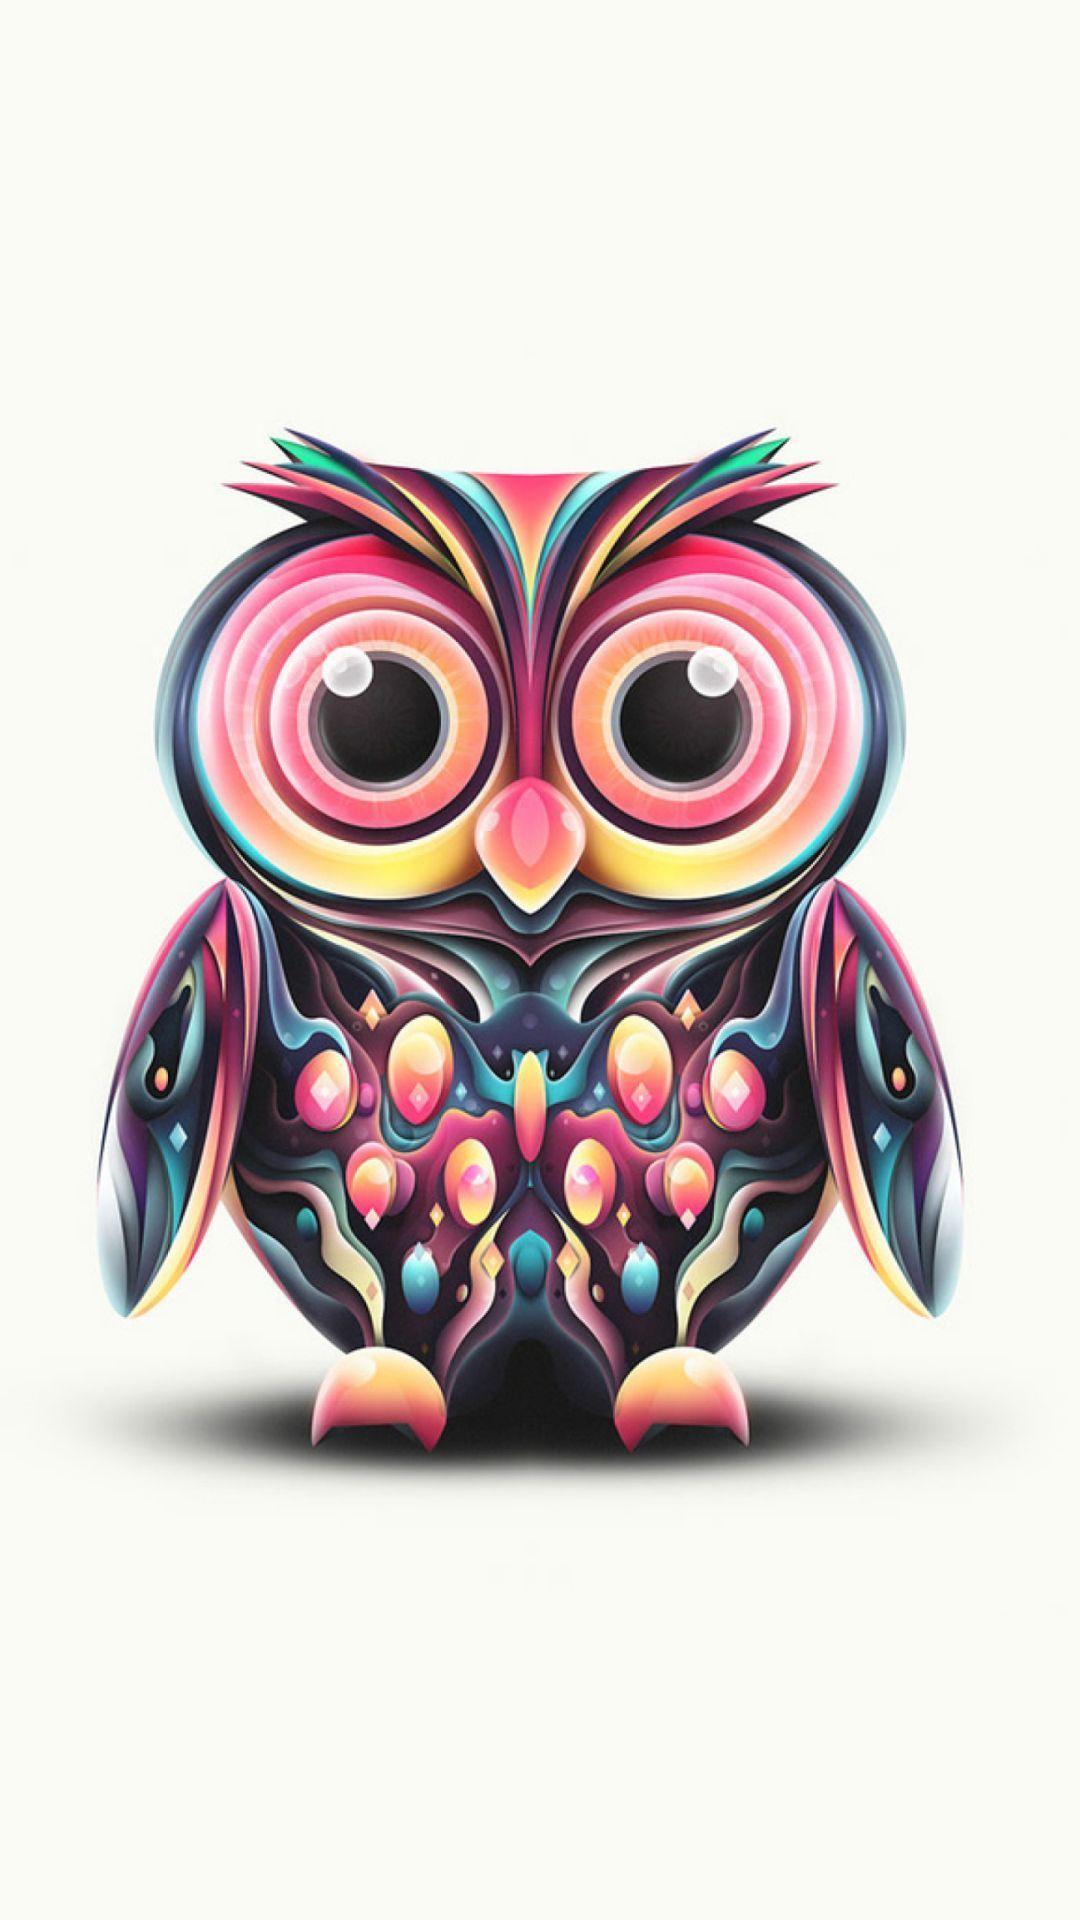 Cute Owl Android Iphone Desktop Hd Backgrounds Wallpapers 1080p 4k 104700 Hdwallpapers Androidwa Cute Owls Wallpaper Owl Wallpaper Owl Background